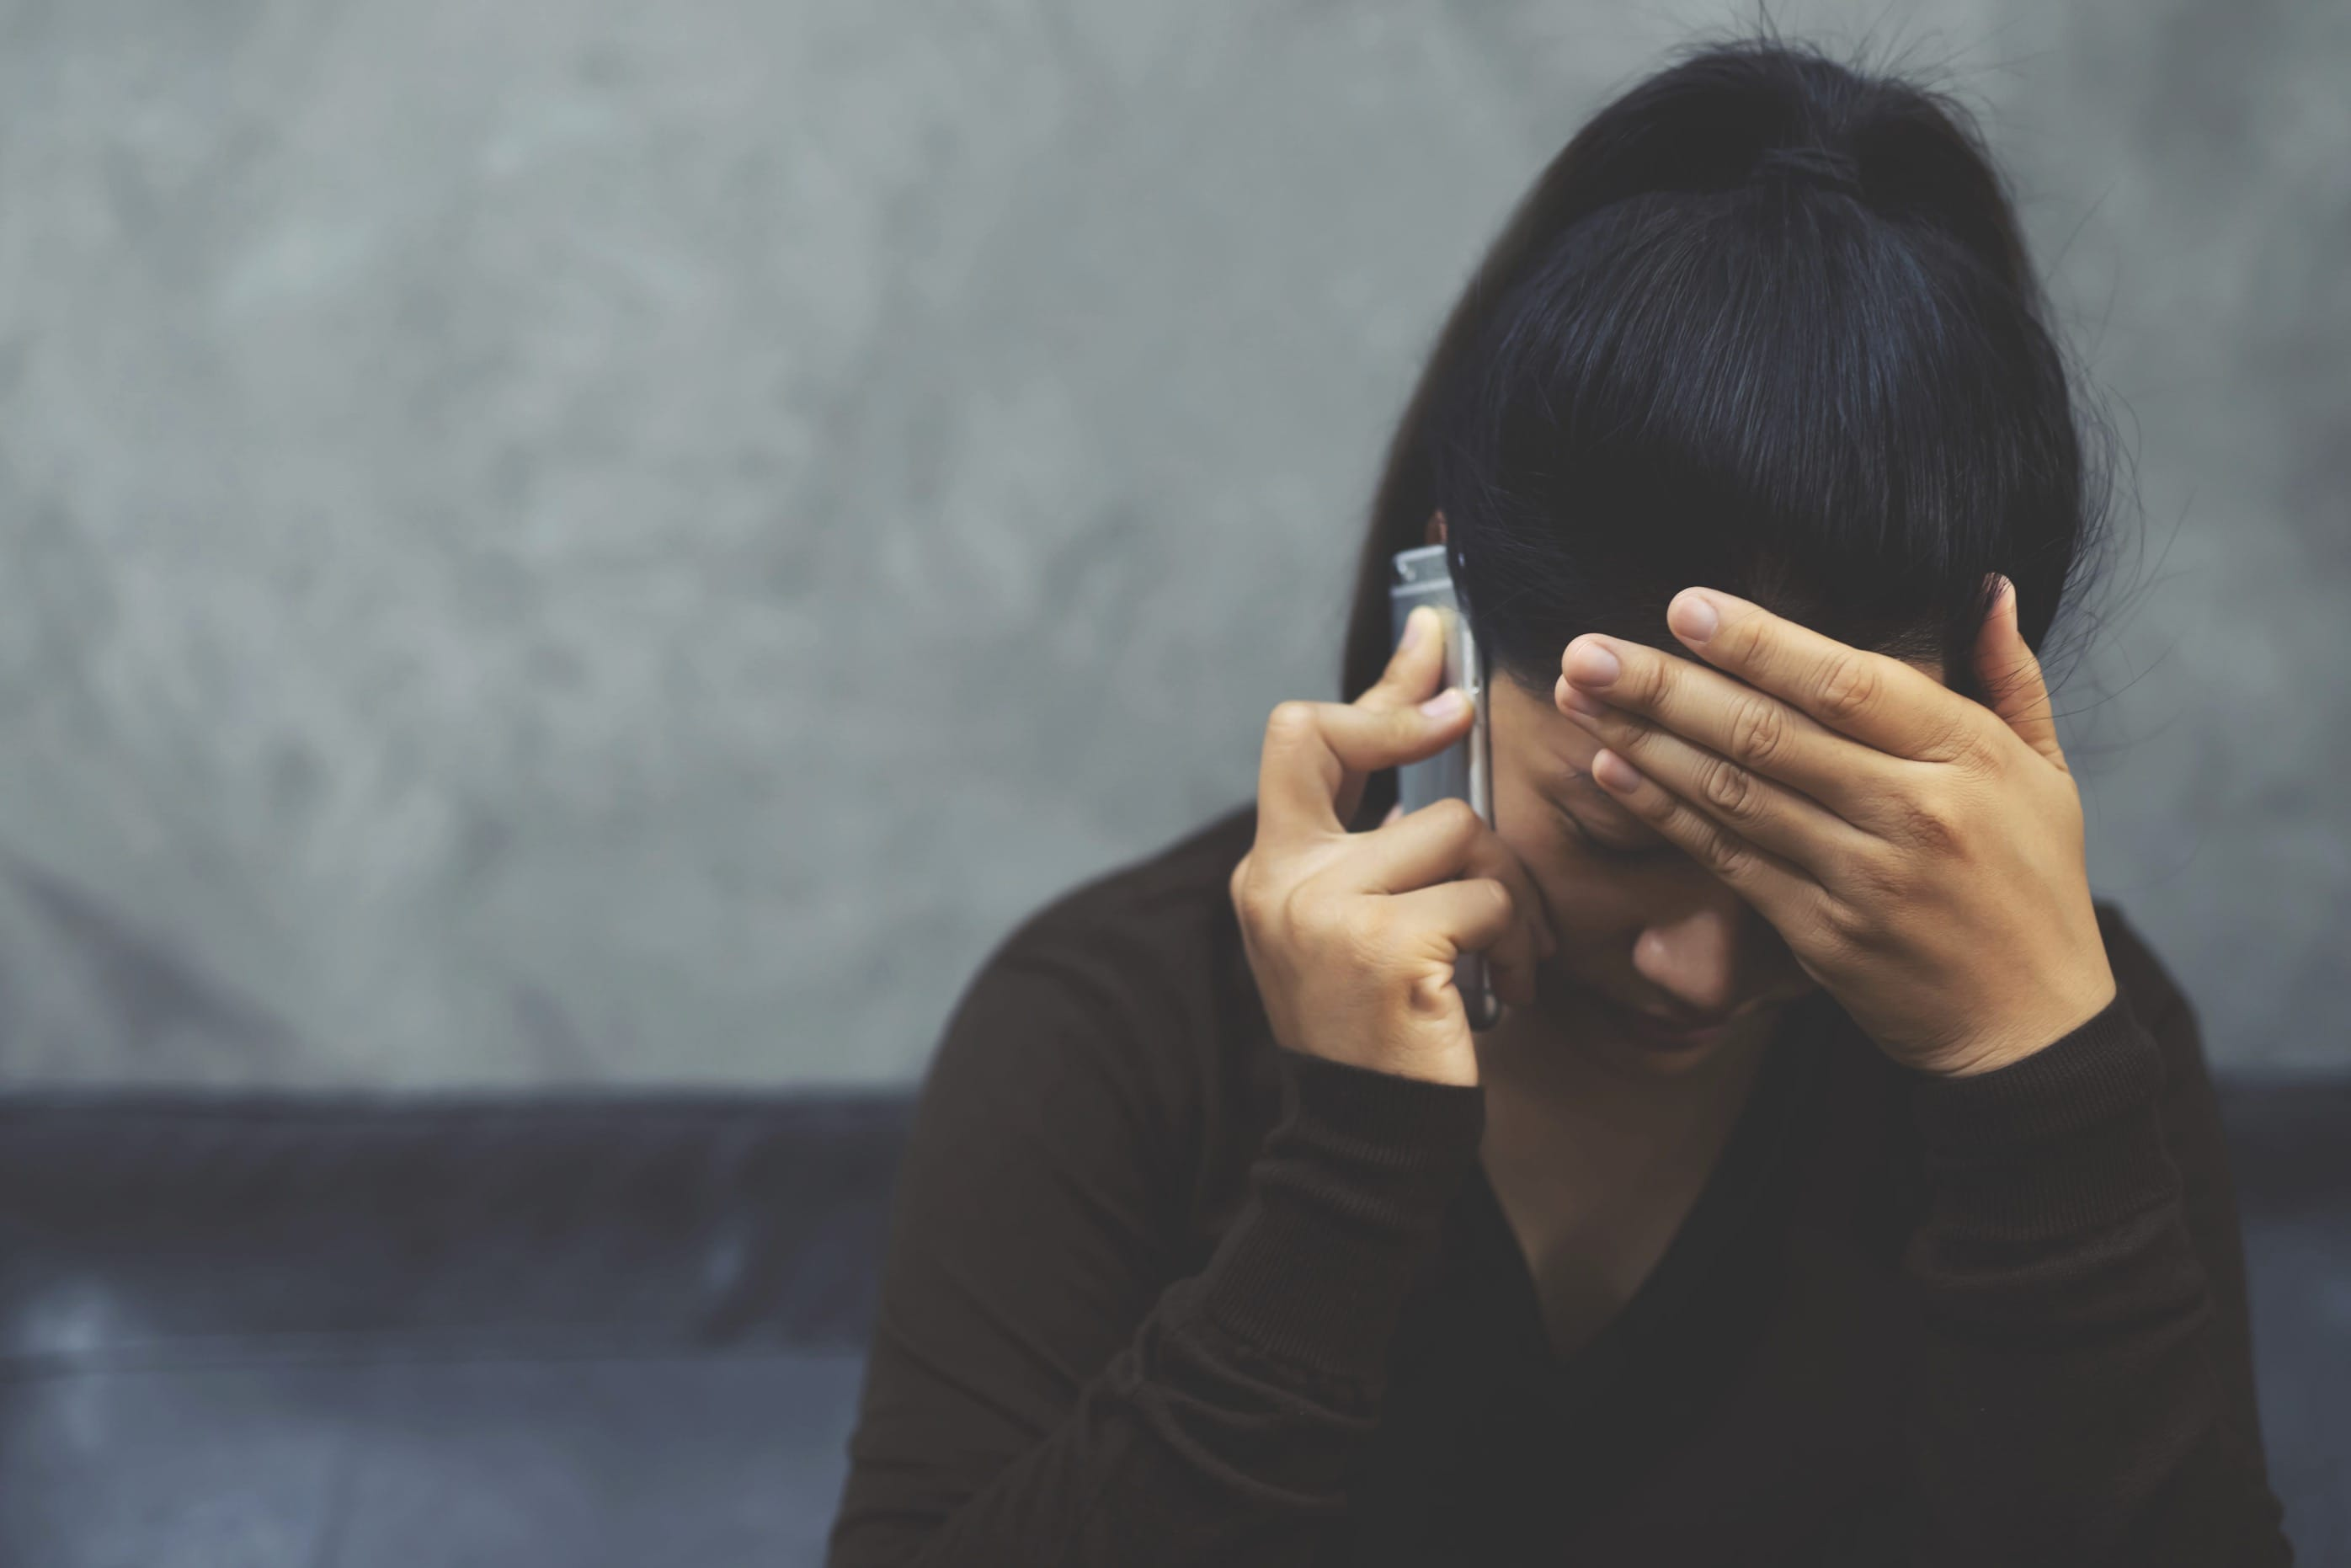 Stressed woman on phone